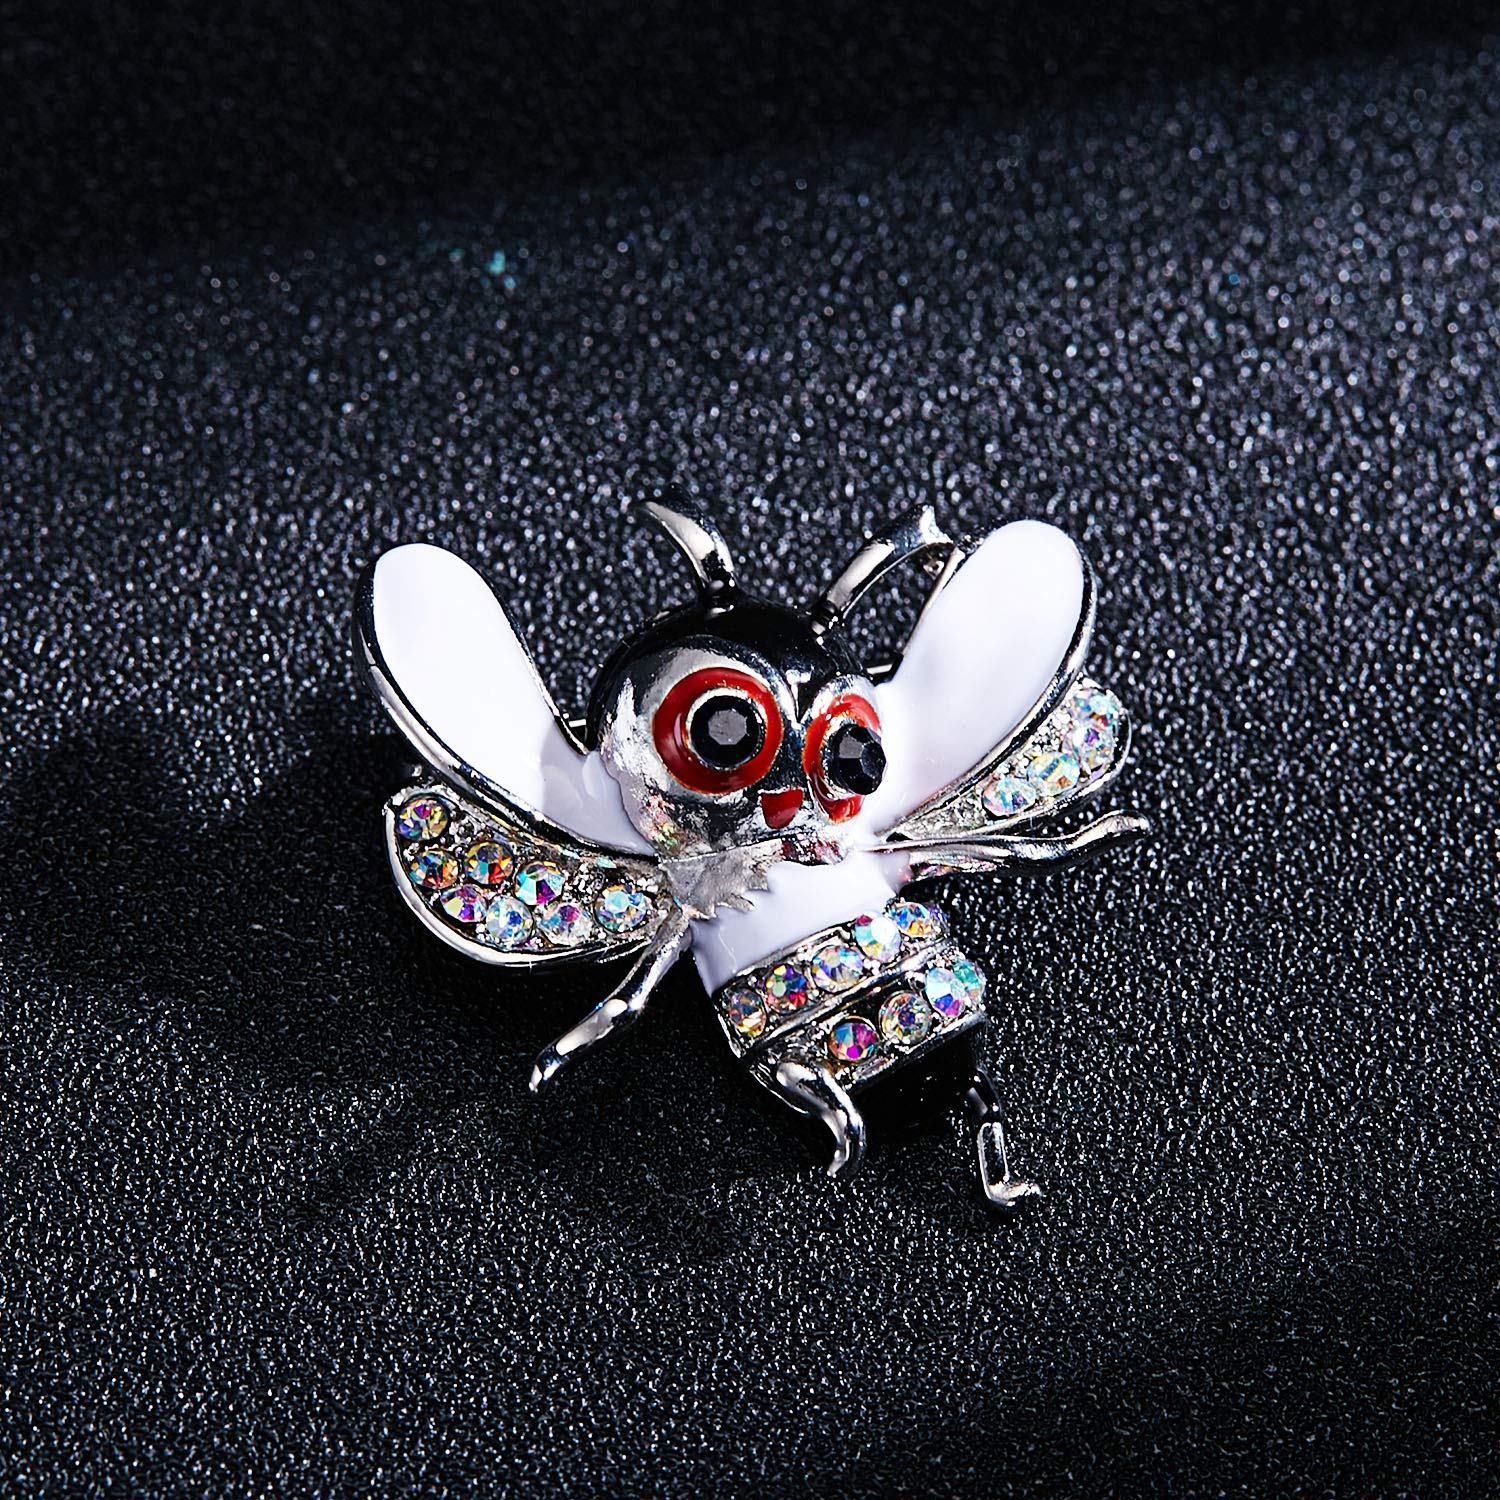 3Pcs Cute Honeybee Enamel Brooches Pin Antique Crystal Rhinestones Bee Scarf Clips for Women Girls (Style5) by beemean (Image #2)